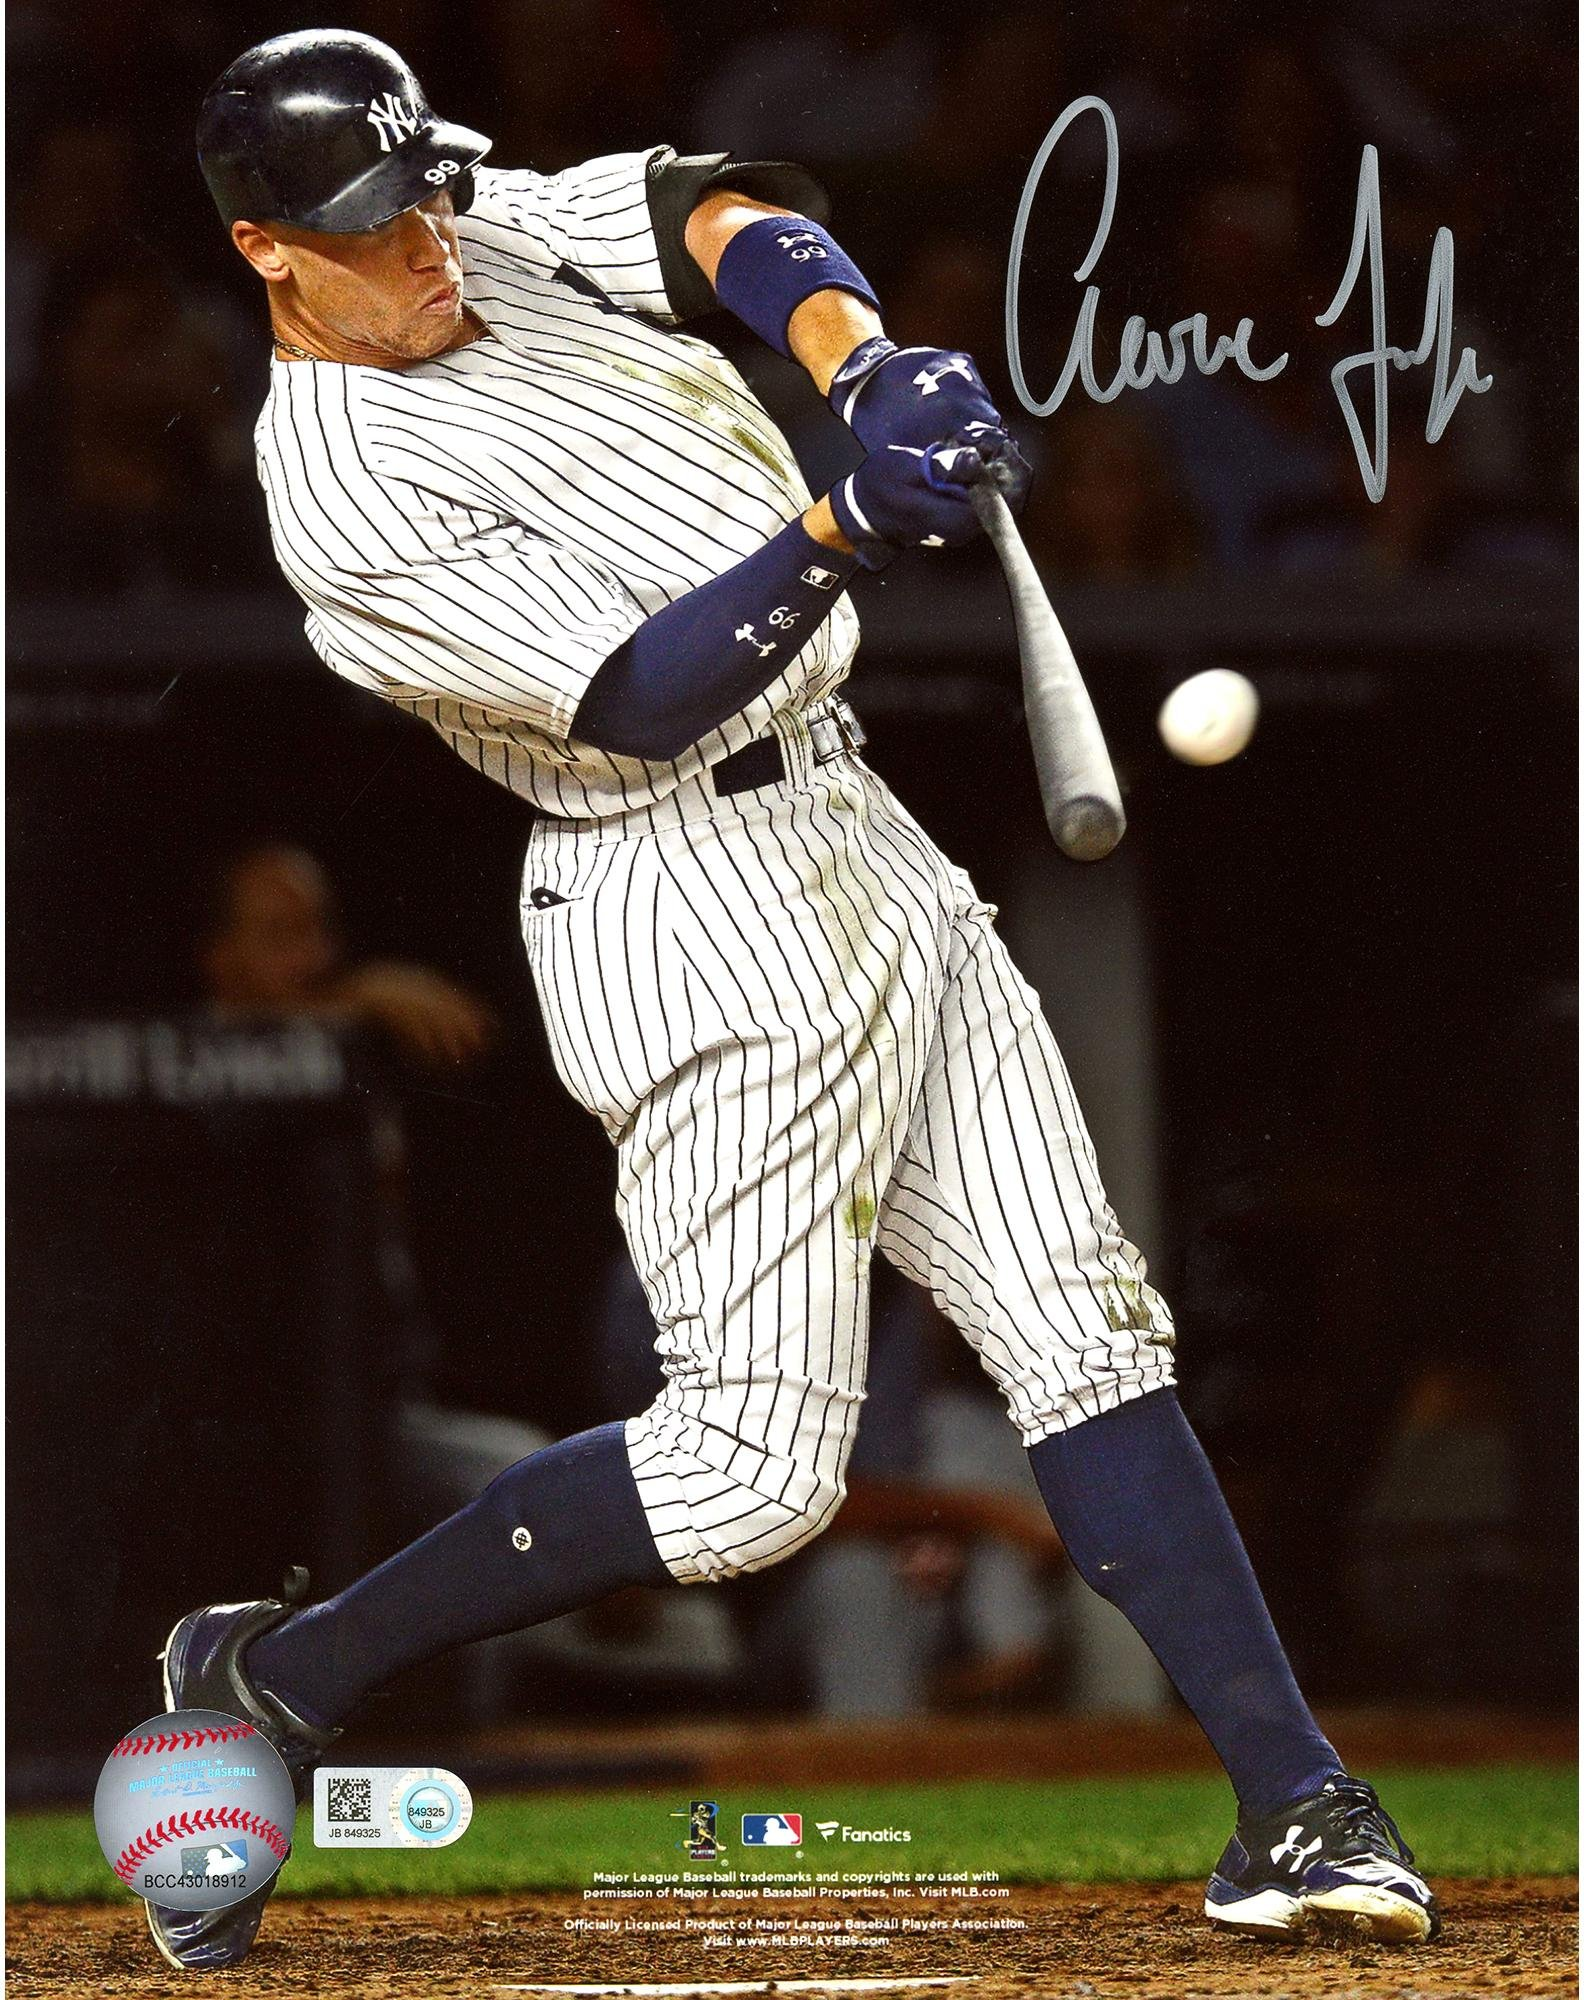 "Aaron Judge New York Yankees Autographed 8"" x 10"" Hitting Home Run Photograph Fanatics Authentic Certified"